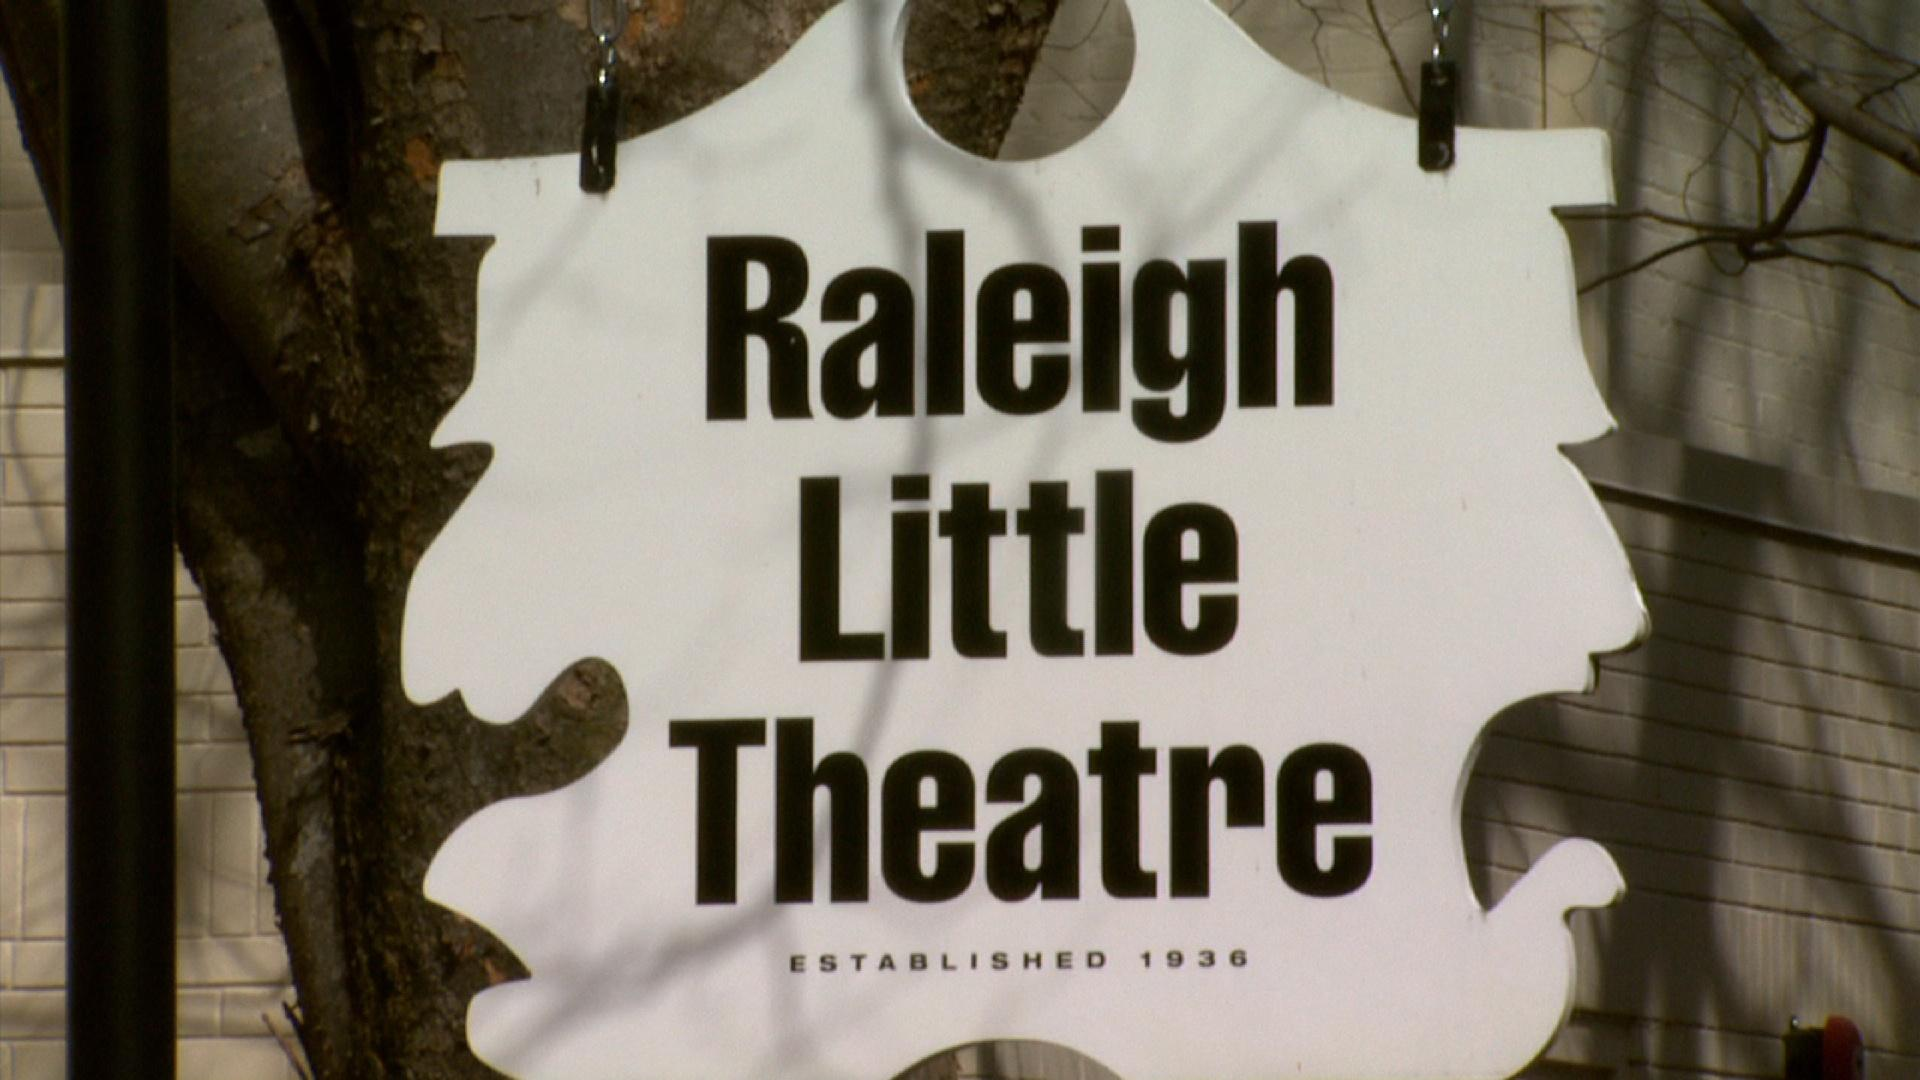 Raleigh Little Theatre image